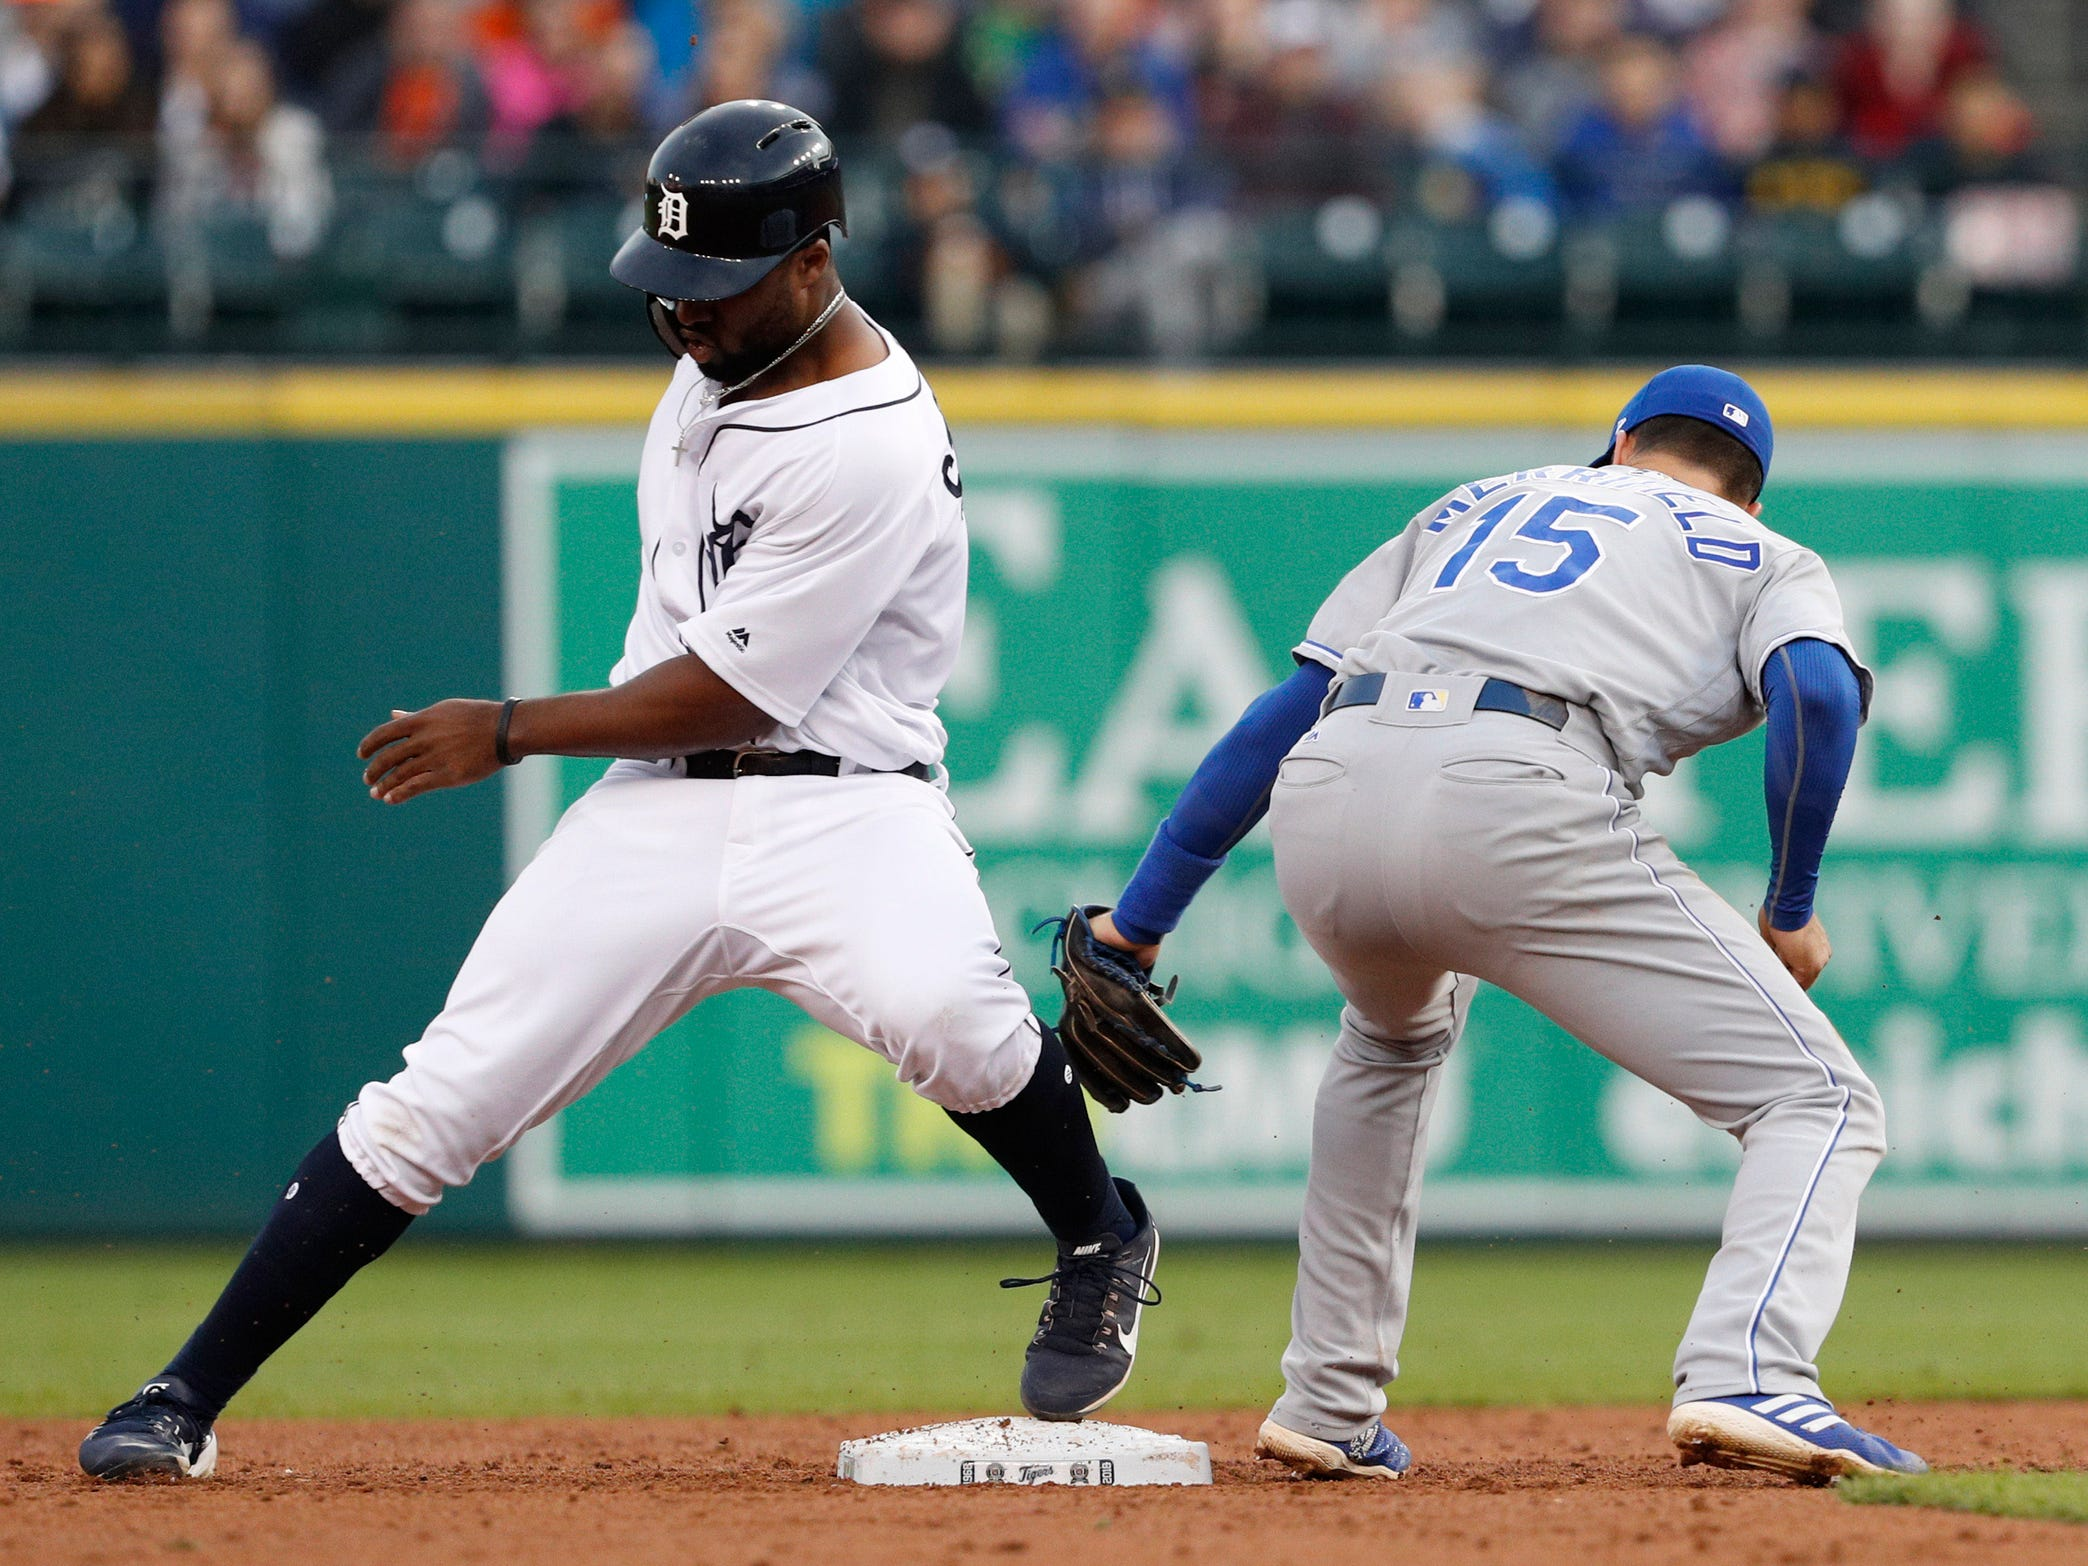 Kansas City Royals second baseman Whit Merrifield is unable to tag out Detroit Tigers left fielder Christin Stewart at second base during the third inning at Comerica Park  on Sept. 22, 2018.